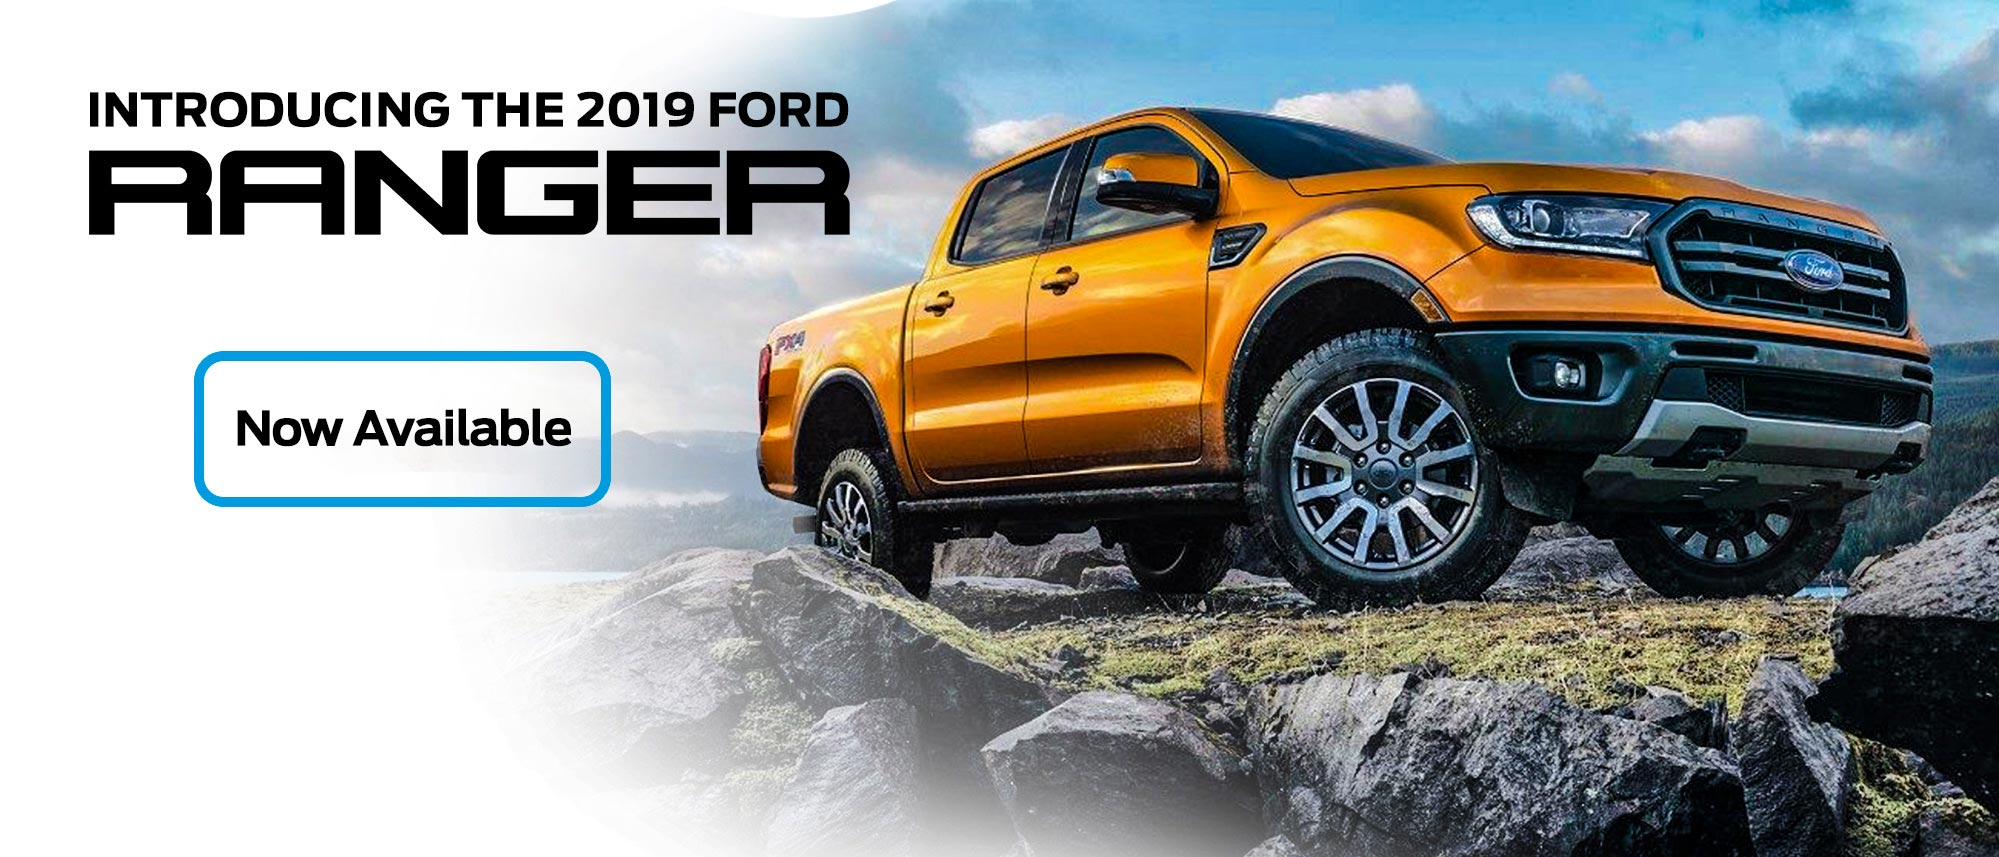 2019 Ford Ranger | Now Available